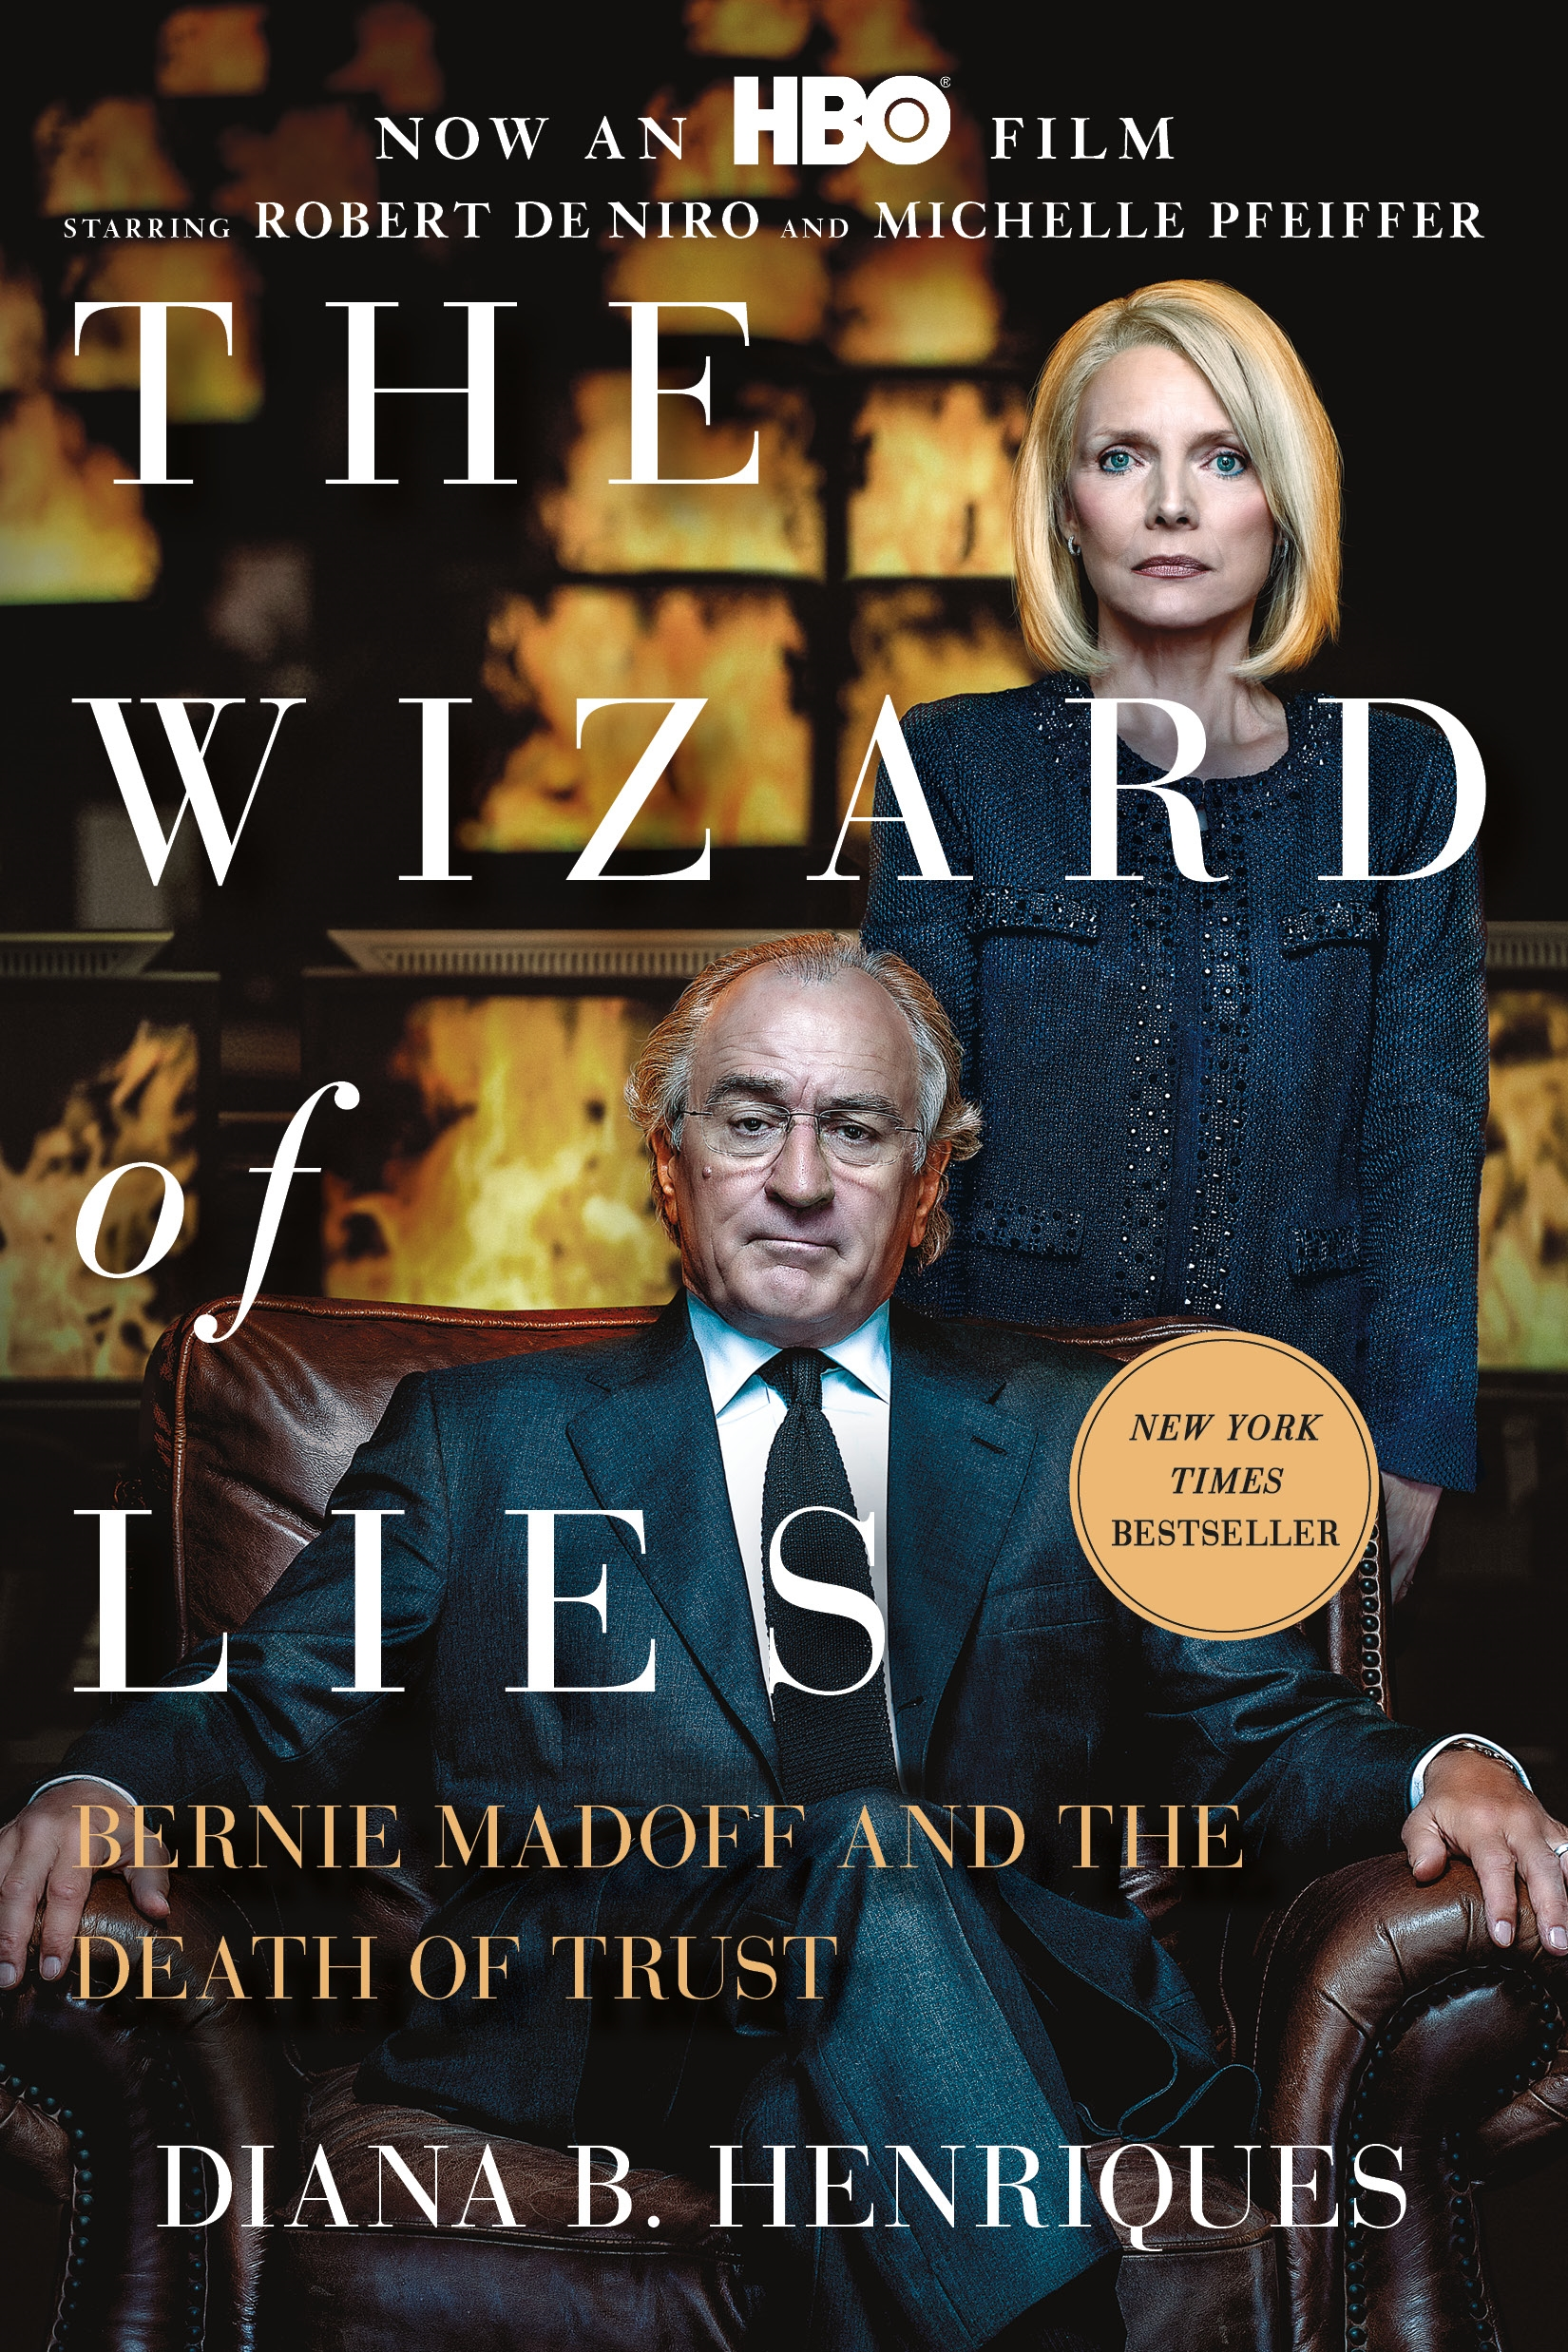 Download Ebook The Wizard of Lies by Diana B. Henriques Pdf